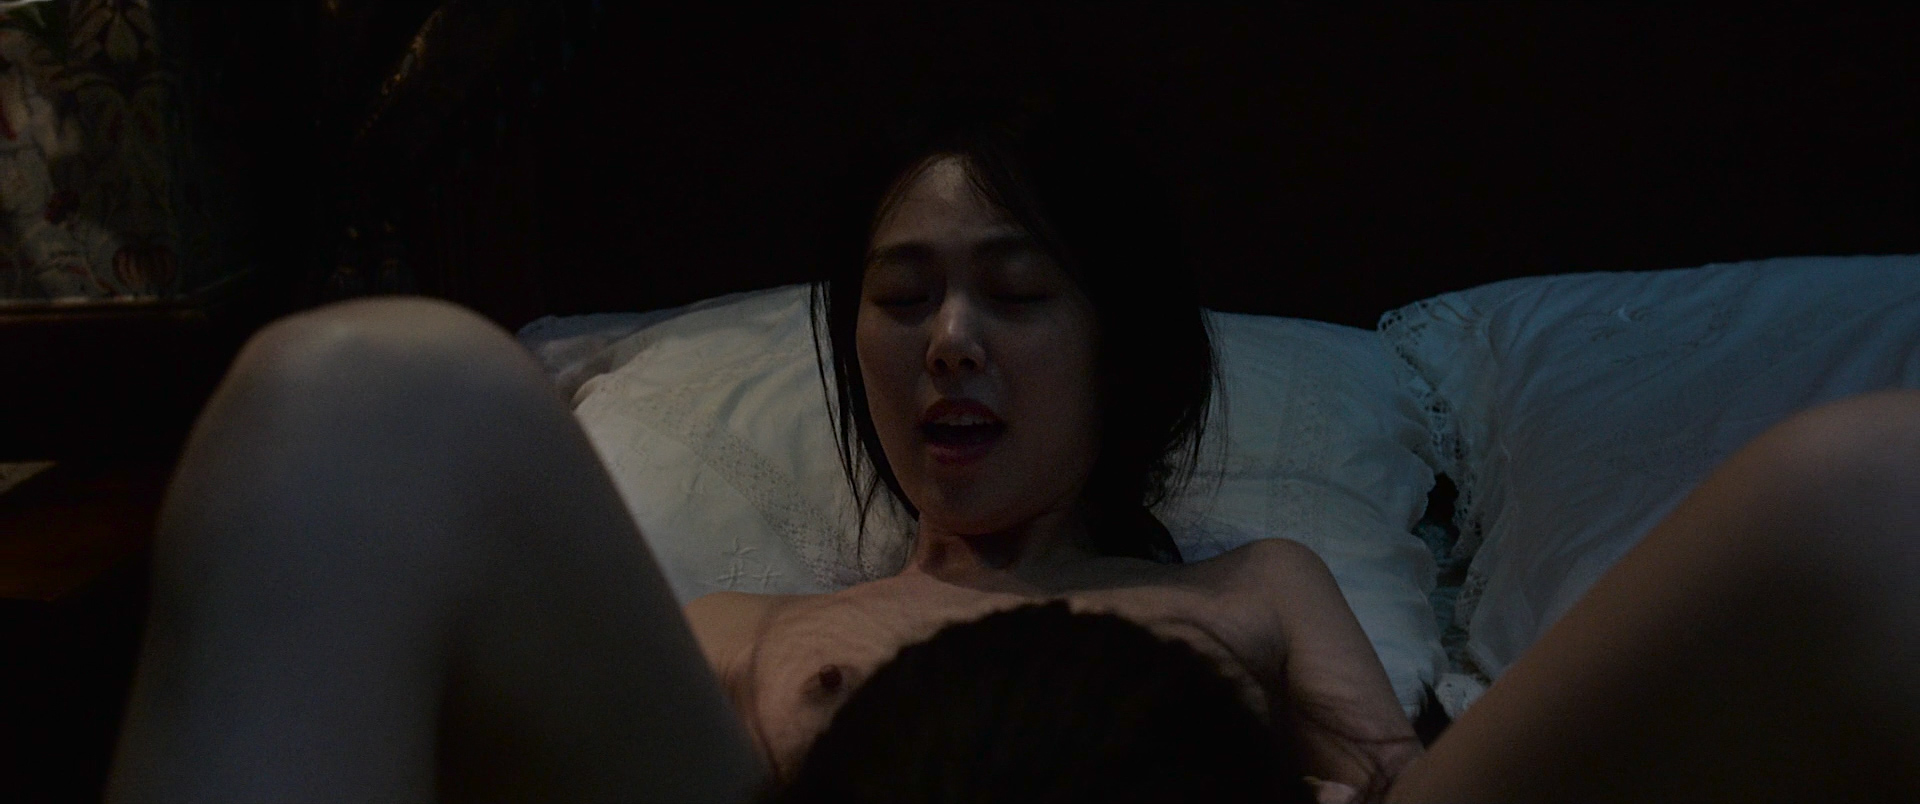 Kim Min-Hee nude topless oral and Kim Tae-Ri nude lesbian sex - The Handmaiden (KR-2016) HD 1080p BluRay (8)